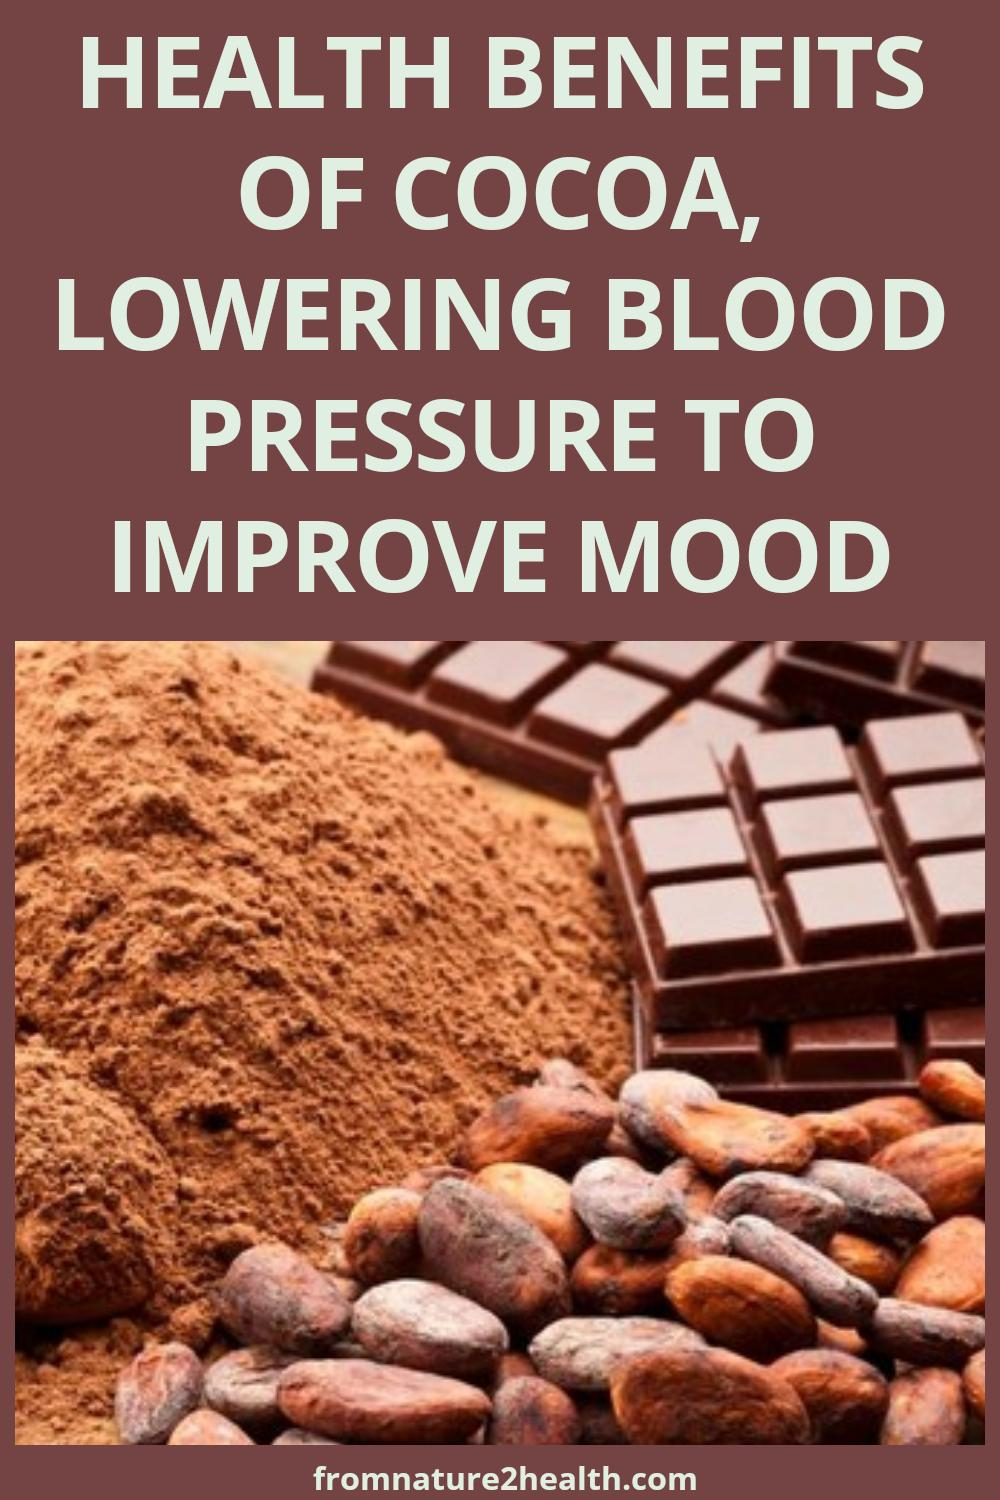 Health Benefits of Cocoa, Lowering Blood Pressure to Improve Mood